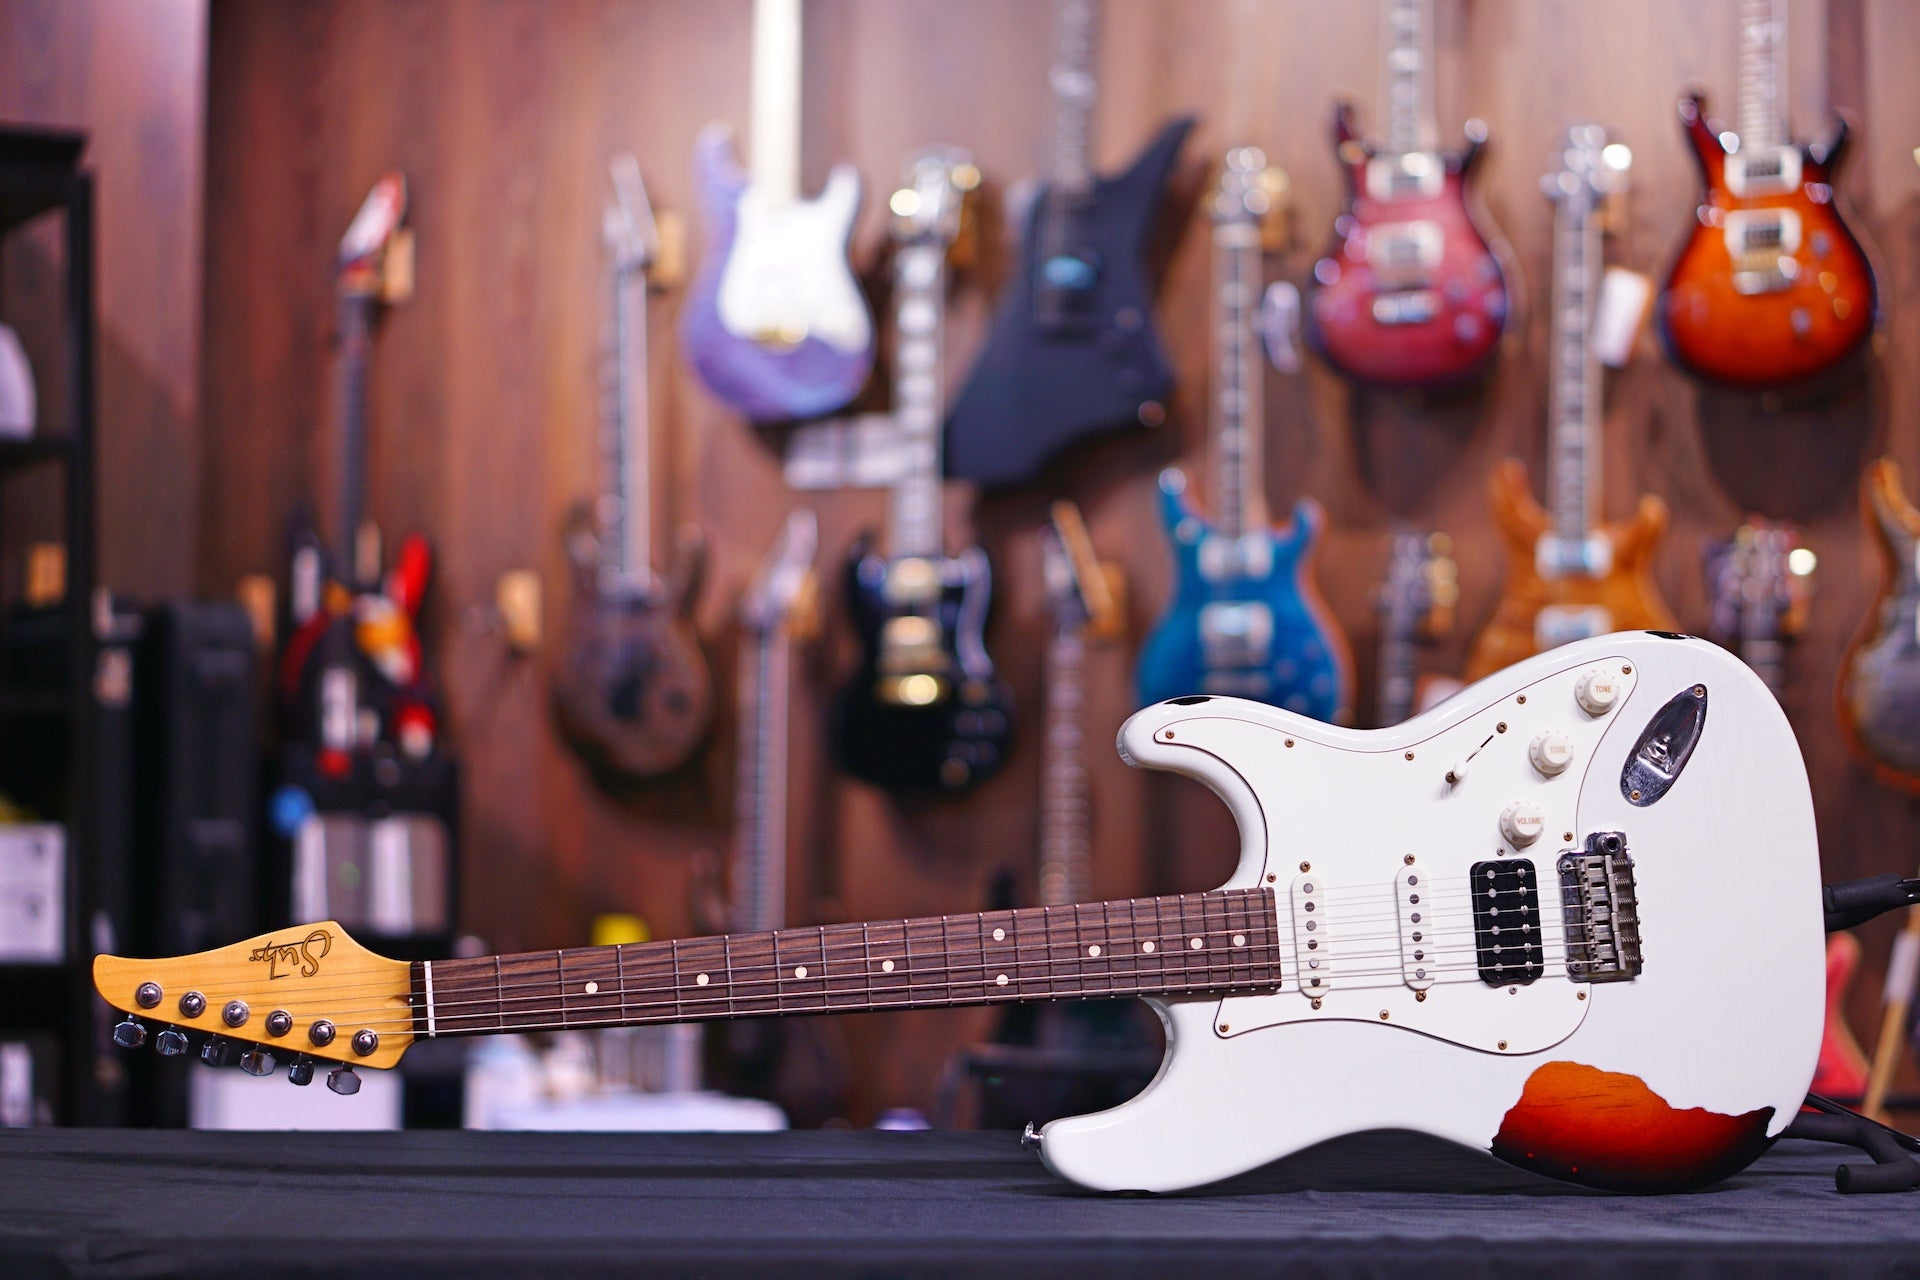 Suhr Classic Antique Finish Over Finish Olympic White Over 3Tb, Js8M2W SUHR - HIENDGUITAR.COM